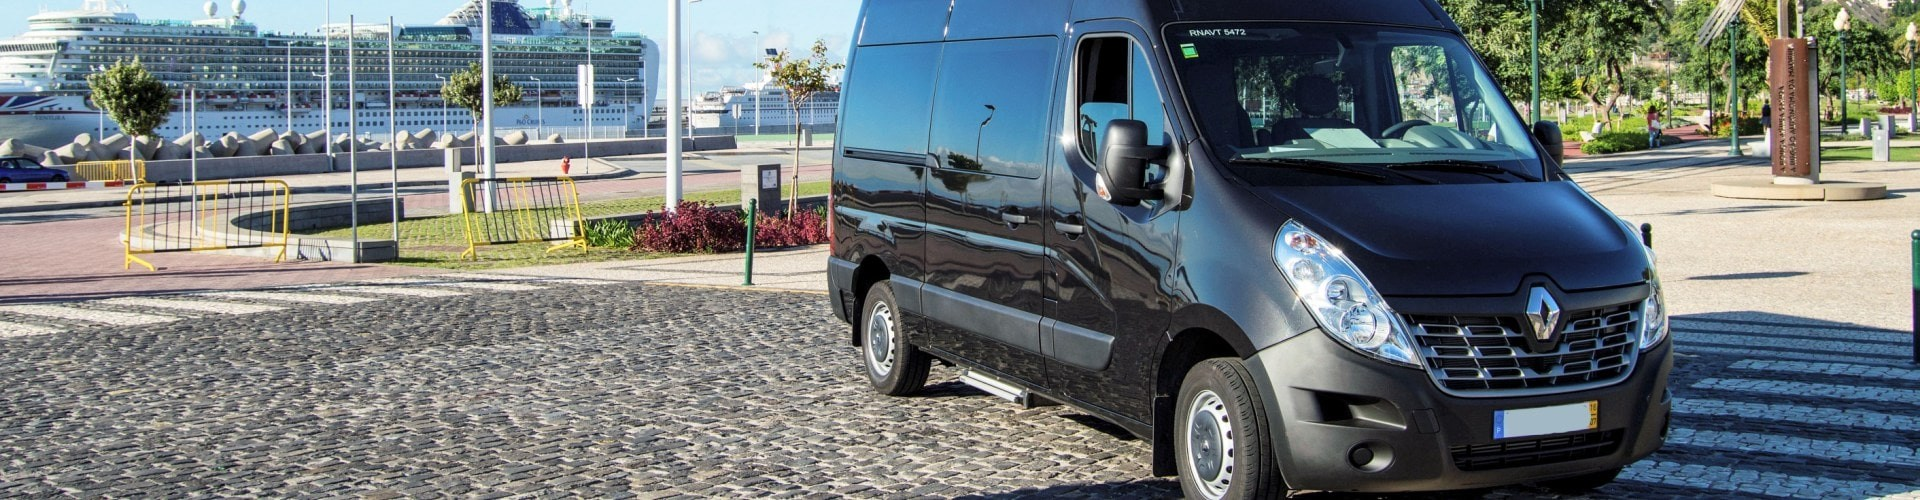 Transfers services in Madeira Island